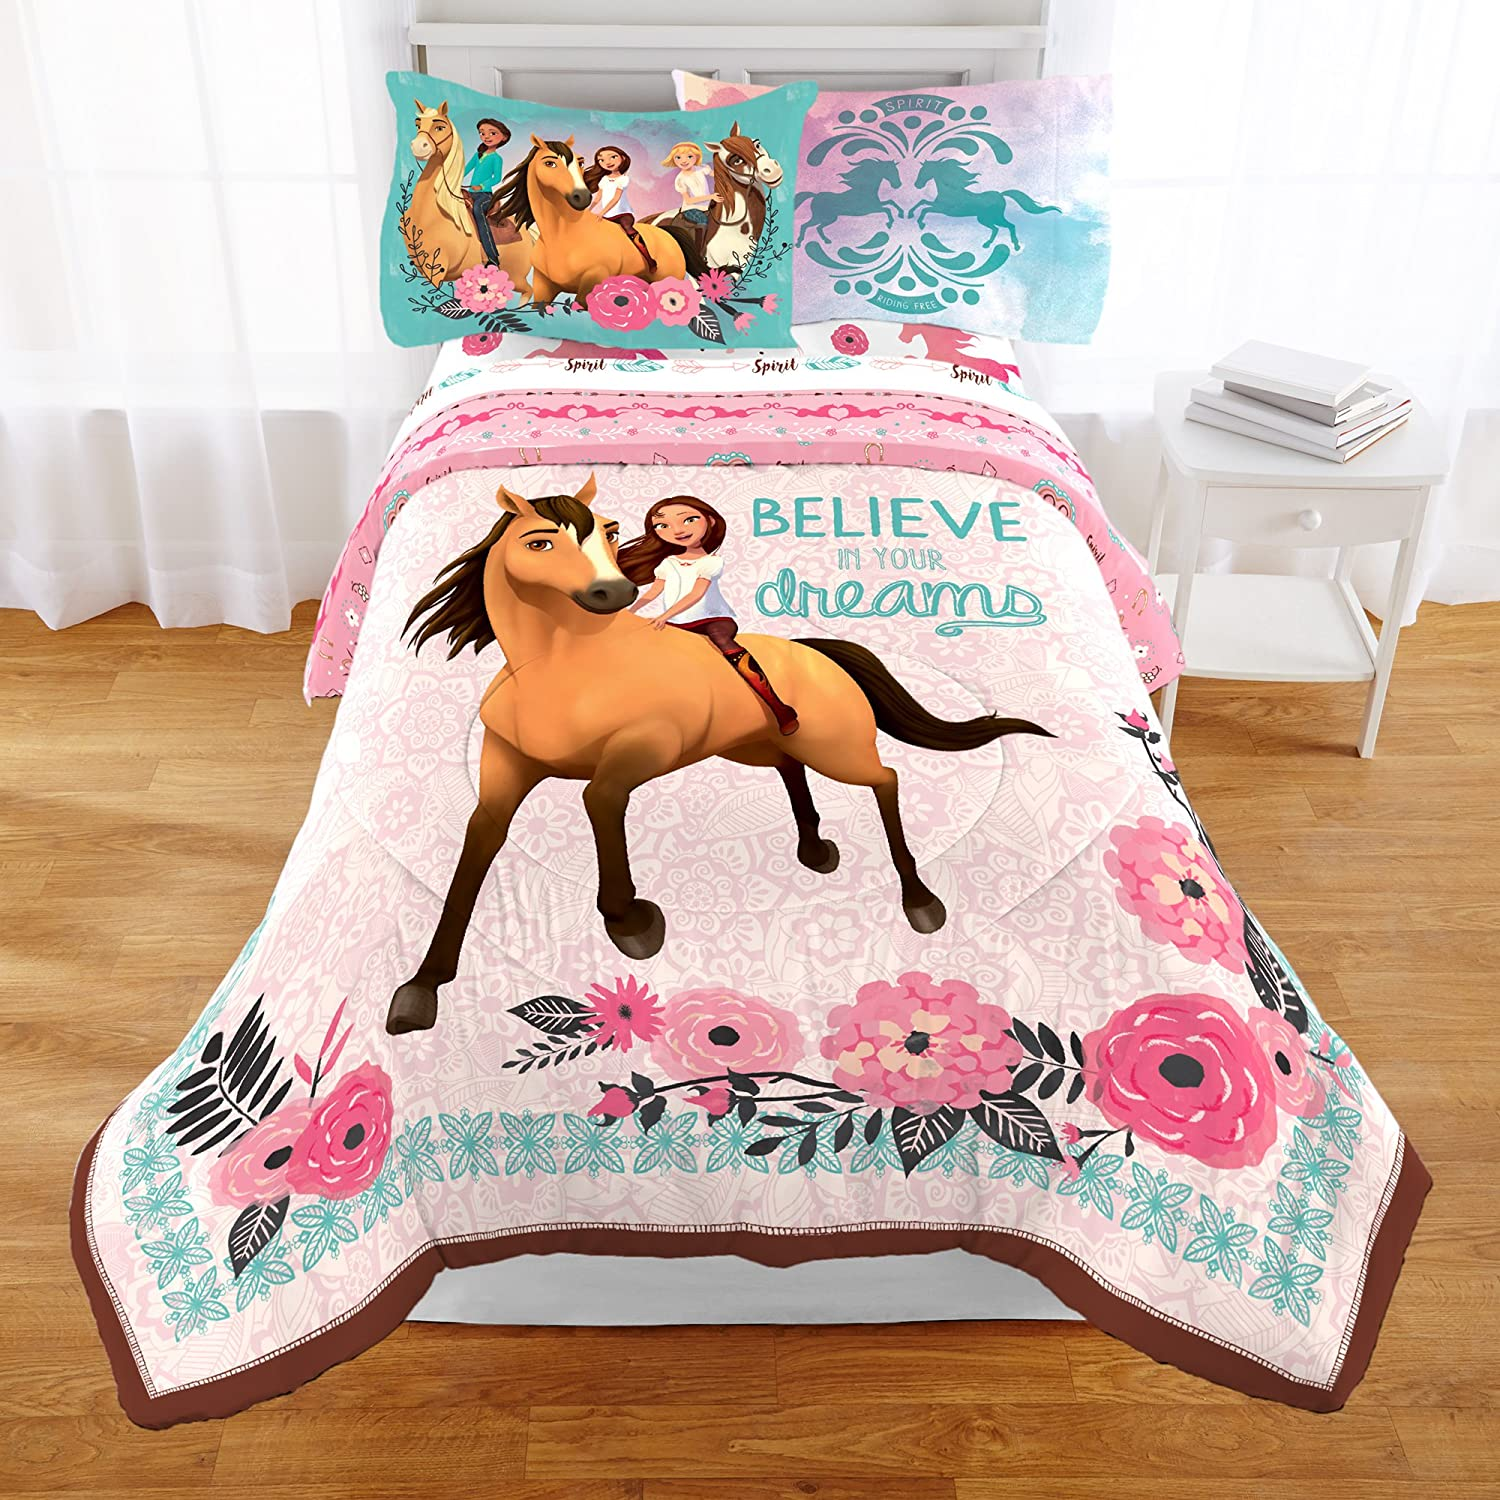 1 Piece Kids Girls Coral Blue Dreamworks Spirit Comforter Twin, Brown Pony Themed Bedding Lucky Giddy Up Believe In Your Dreams Stallion Horse Flower Adventures Magical Fantasy Animated Film Polyester